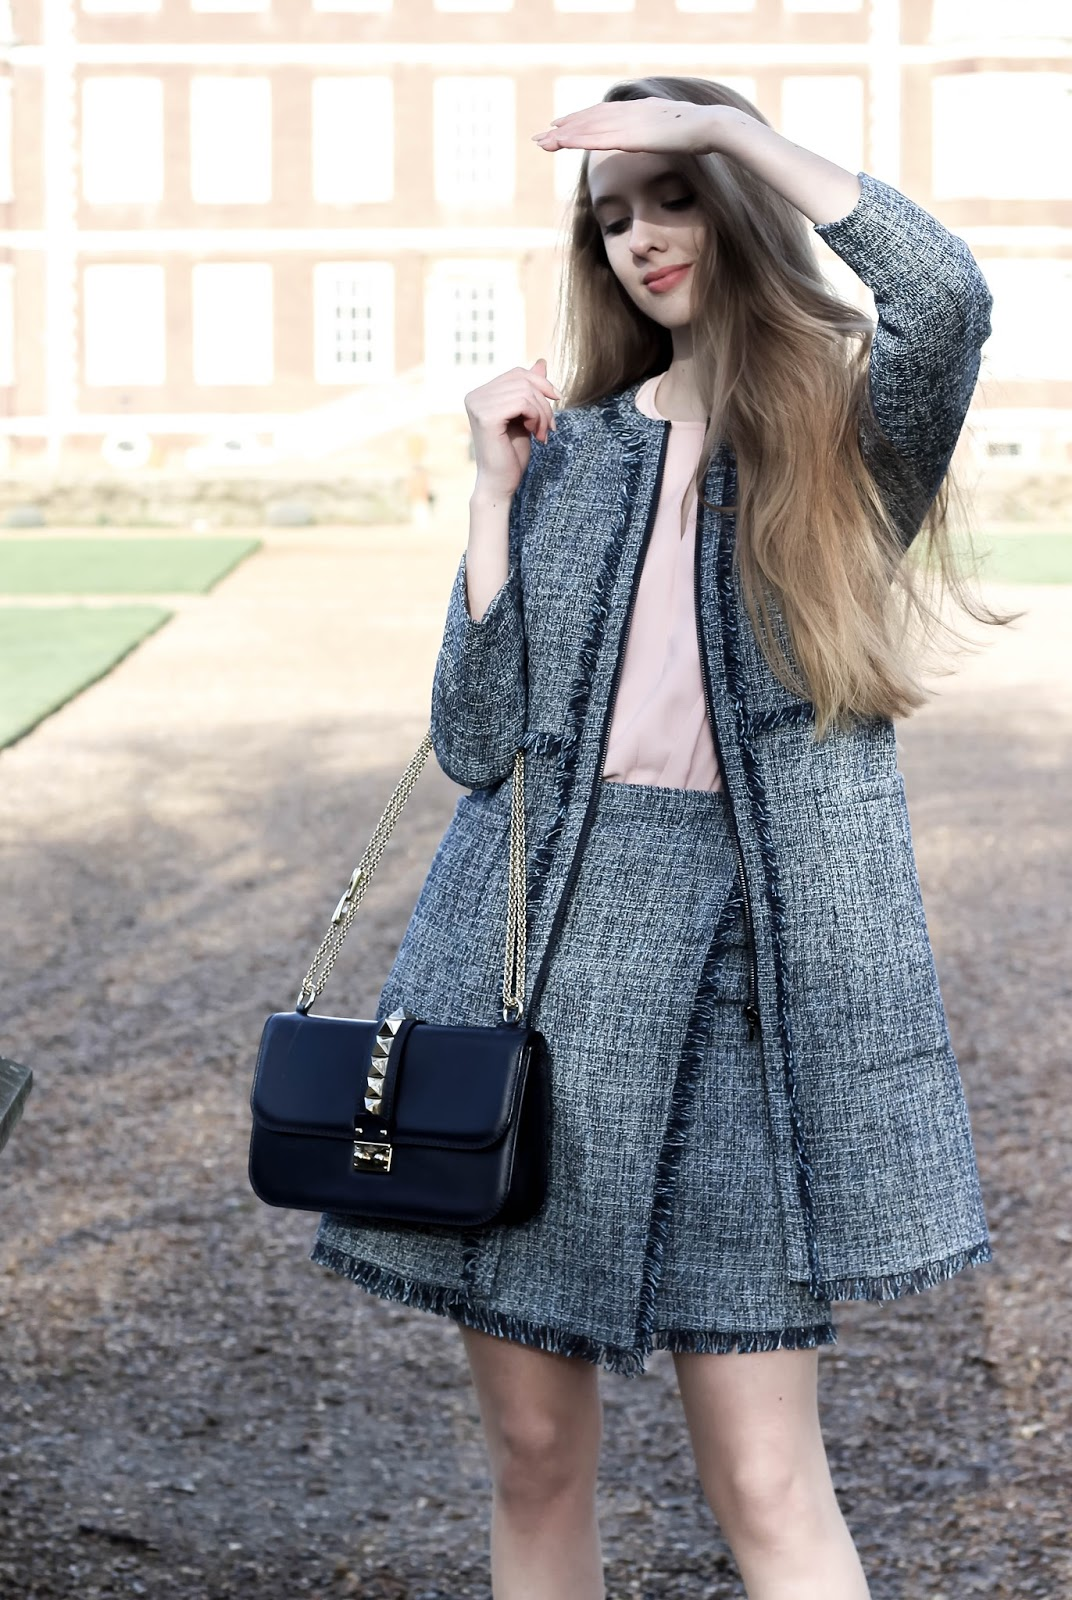 Styling a Tweed Skirt Suit for Spring 2018